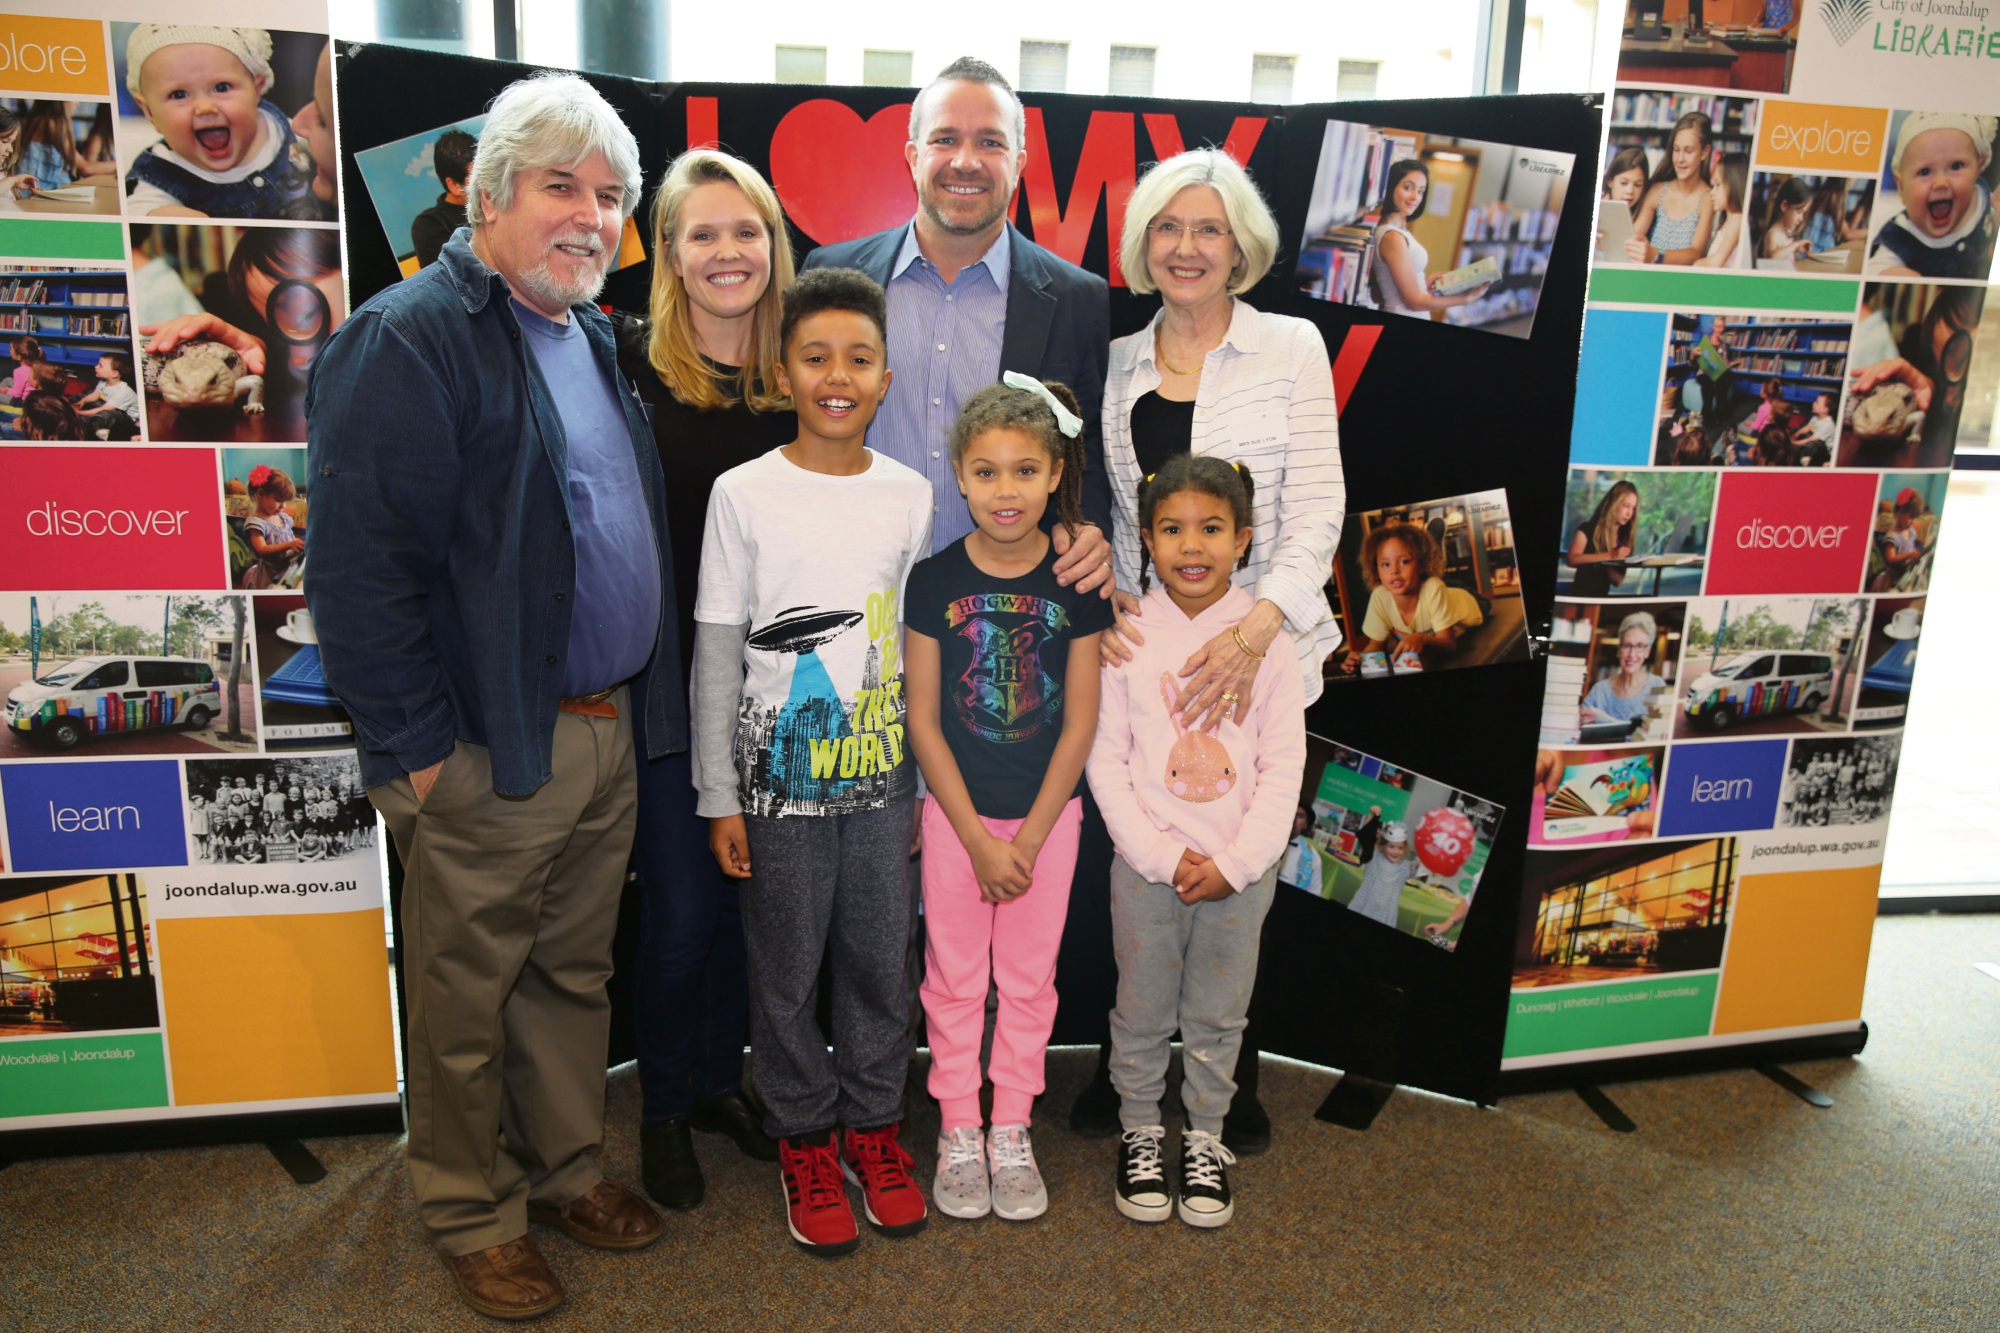 Different generations of the Augustus/Lyon family pictured with Mayor Troy Pickard spoke about what Joondalup Library means to them.